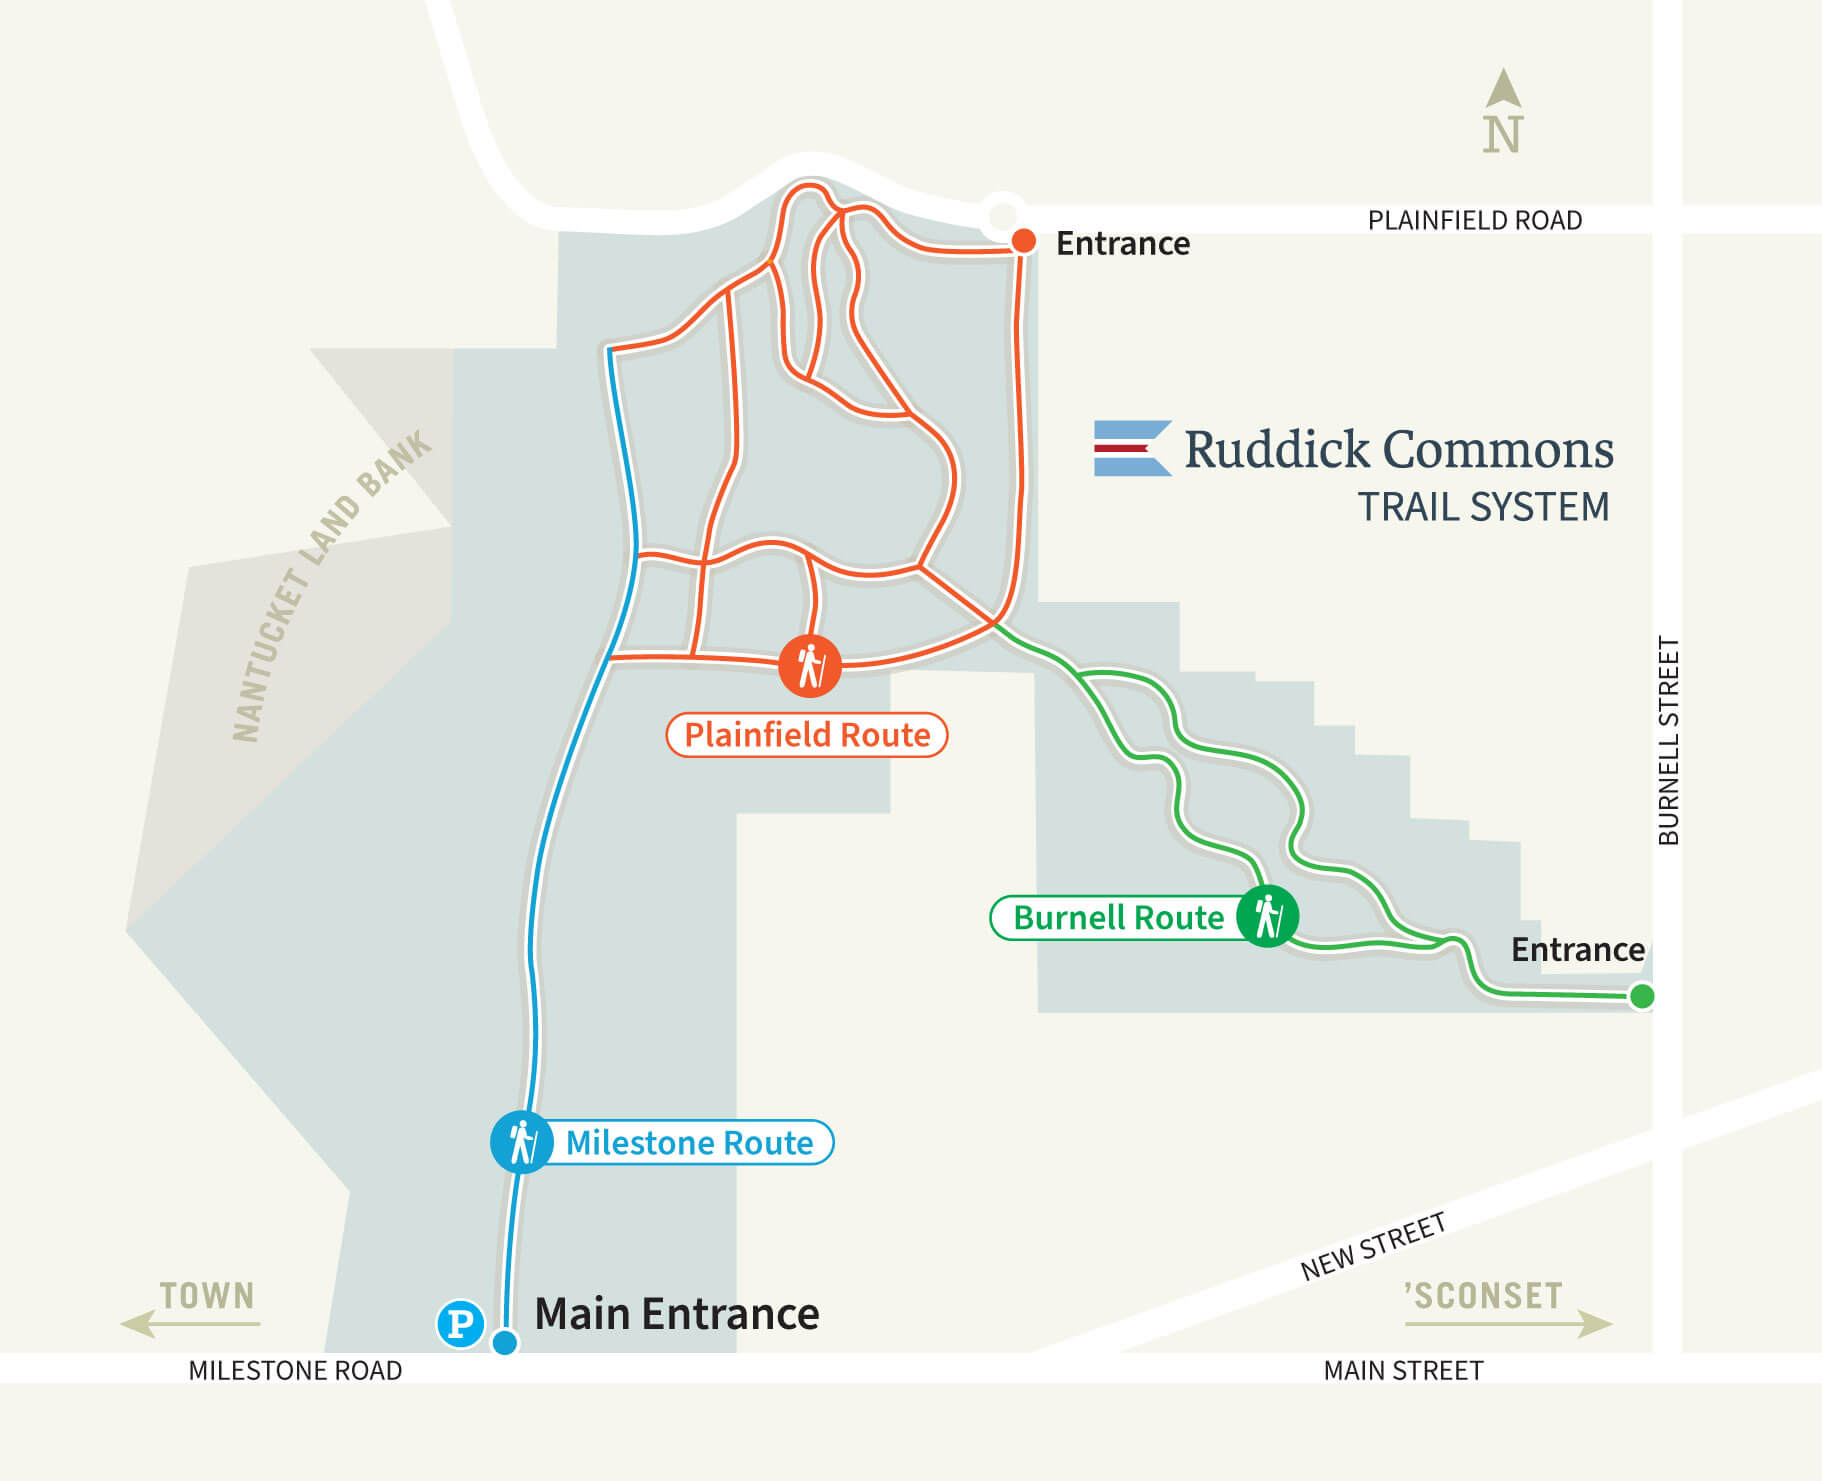 Map of Ruddick Commons Trail System